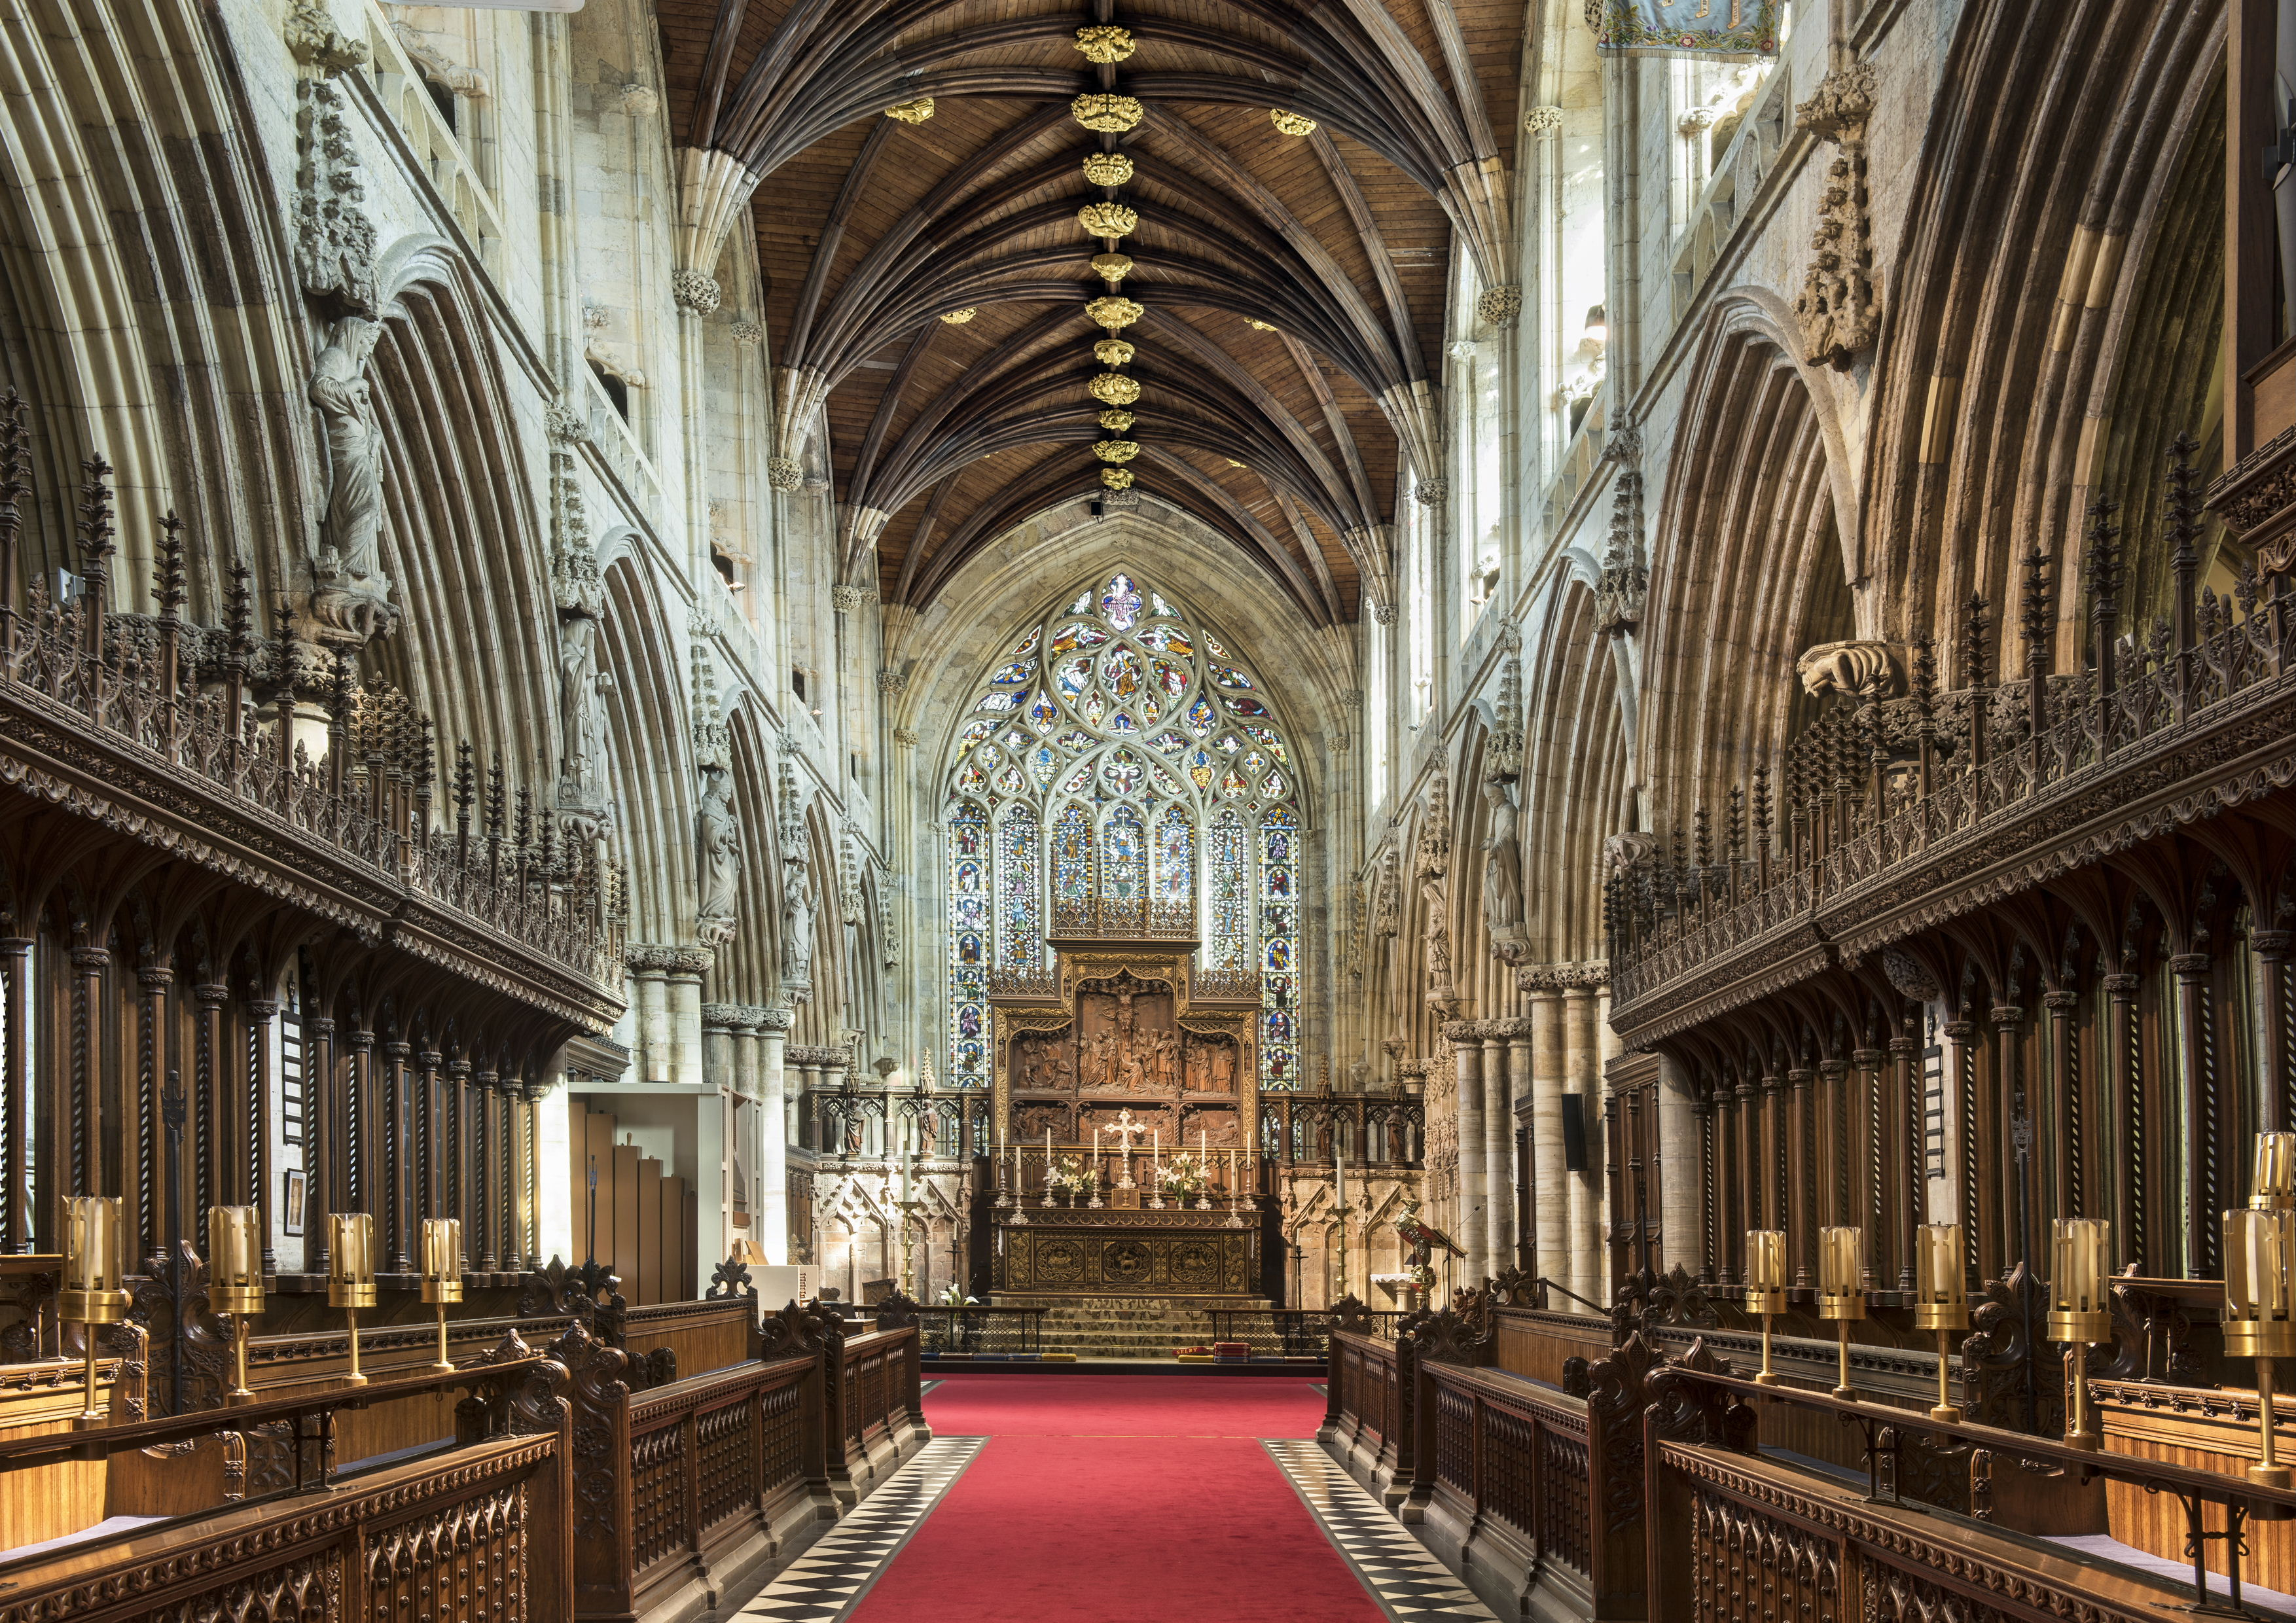 Image of the inside of the Selby Abbey Church